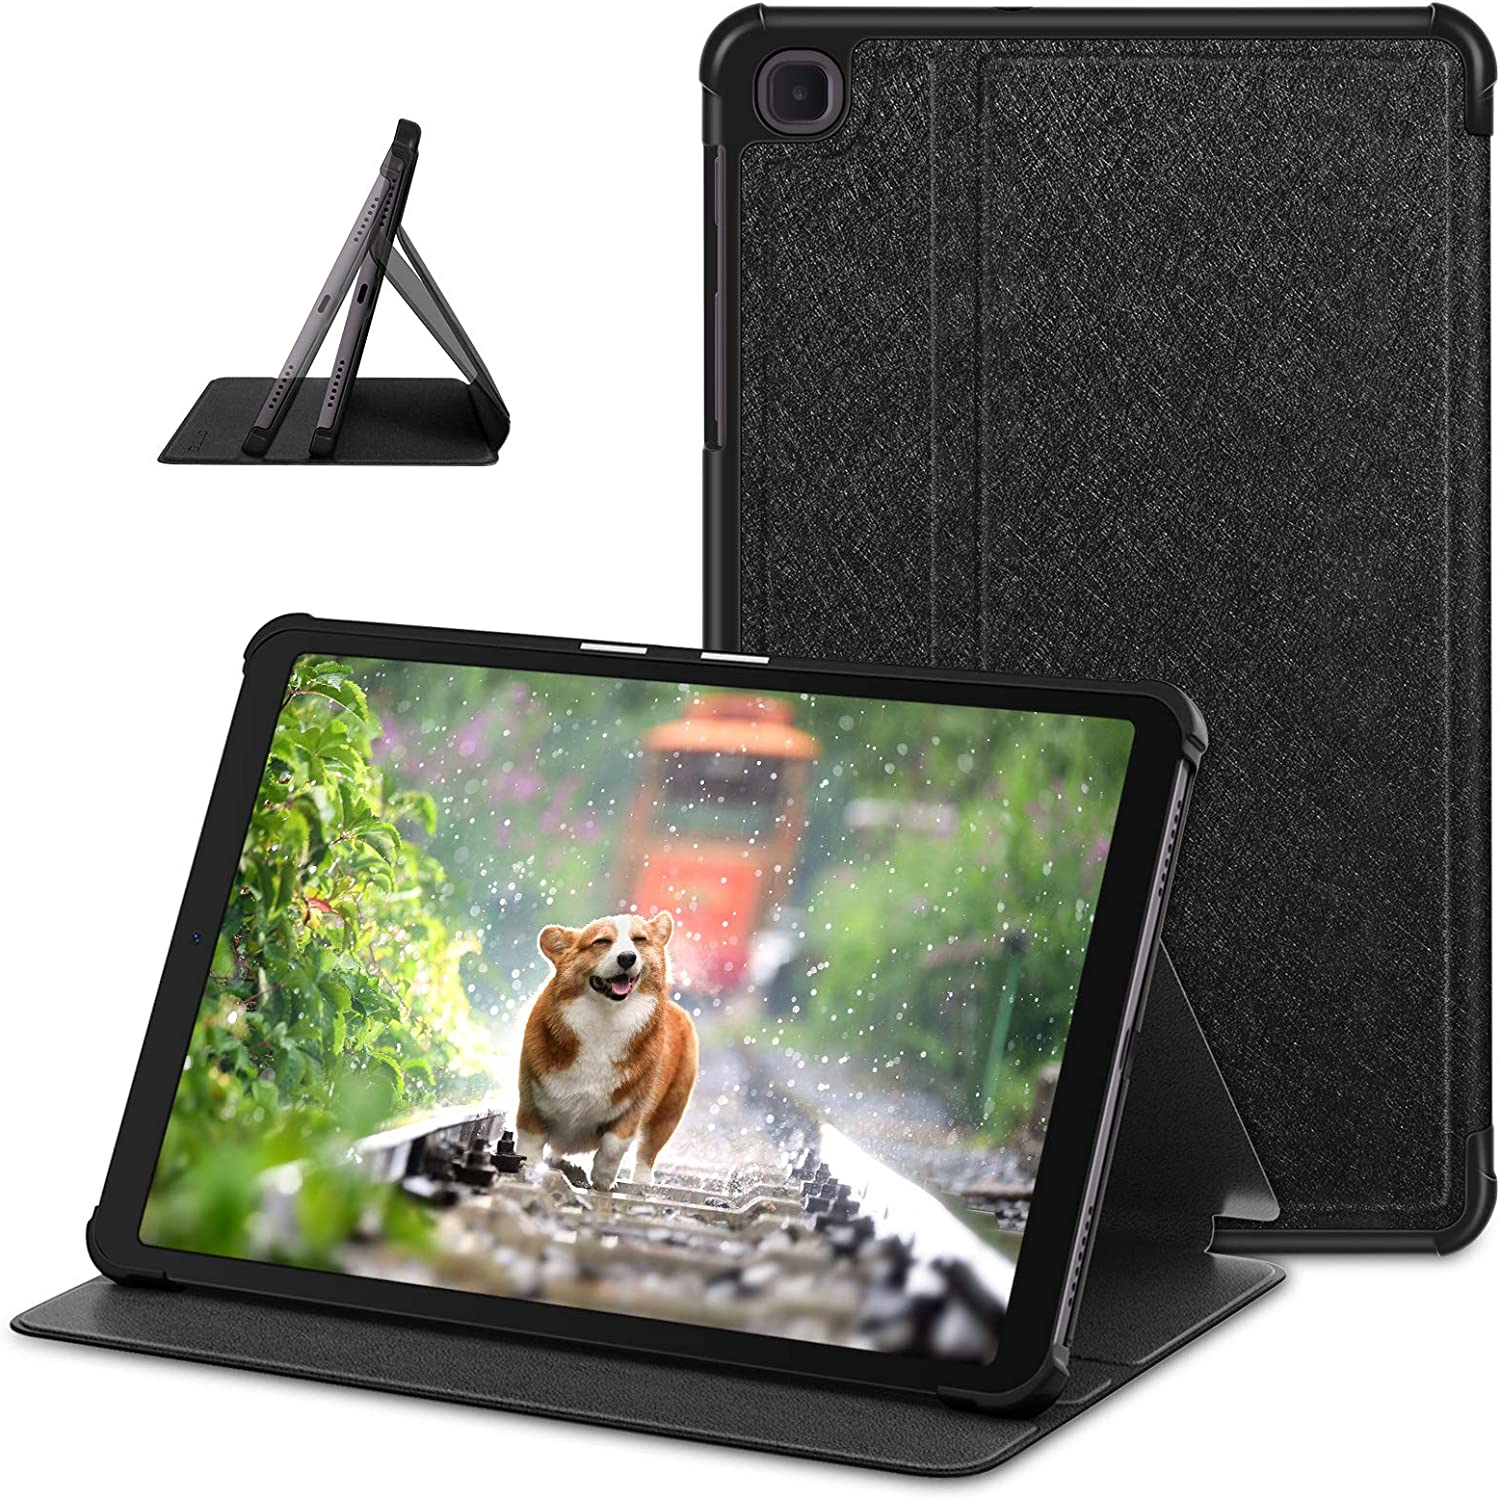 DTTO Galaxy Tab A 8.4 Inch Case 2020, Premium Silk Patterns Folio Stand Cover for Samsung Galaxy Tab A 8.4'' Tablet (SM-T307) - Multiple Angles - Black